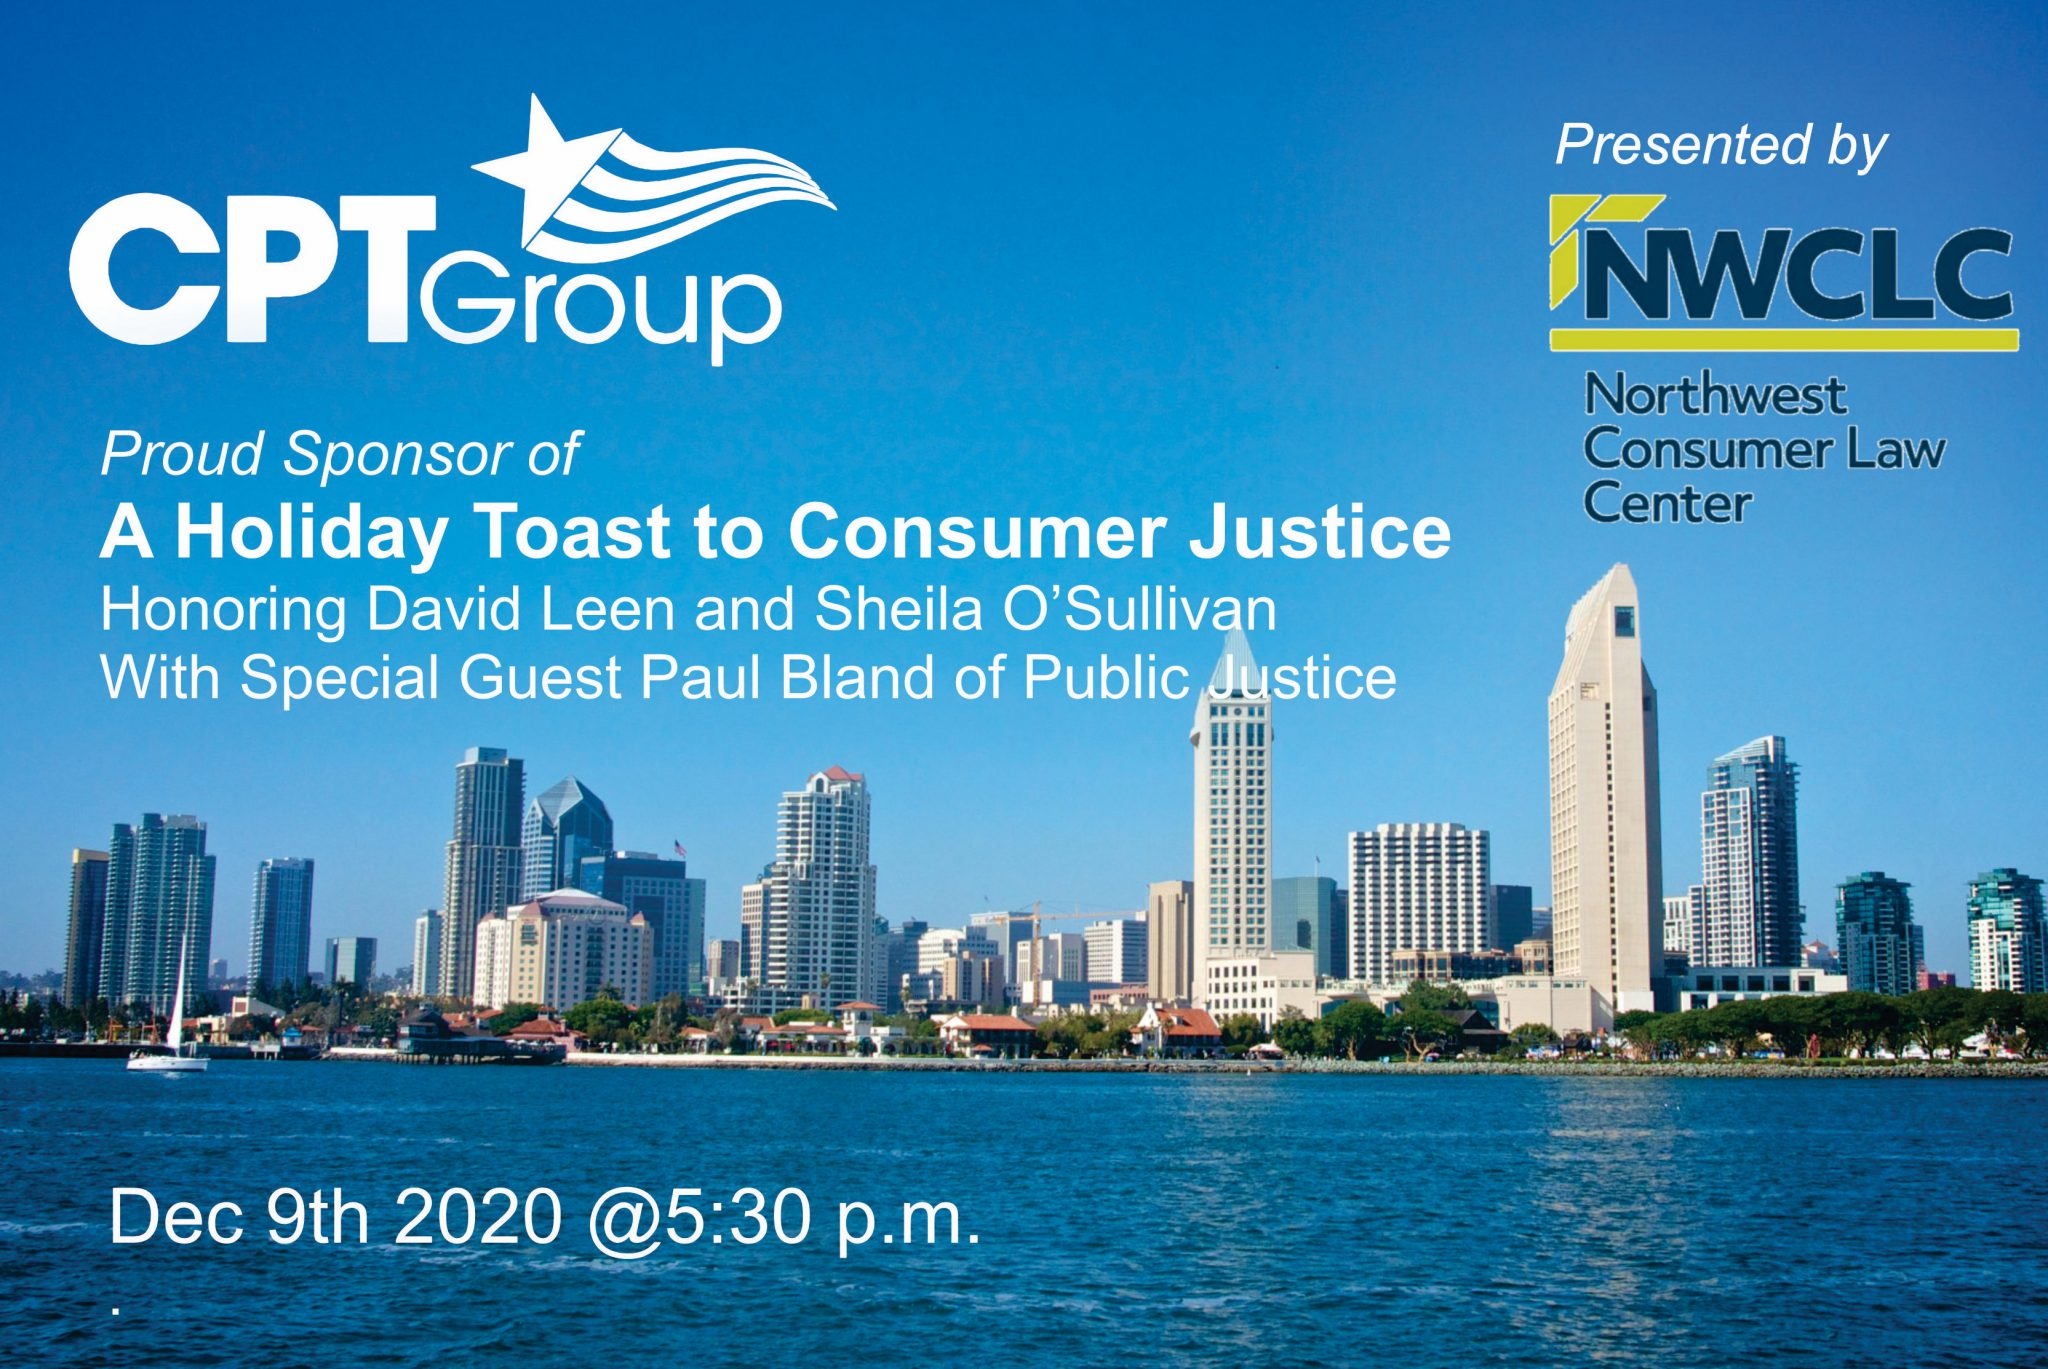 CPT Group Proud Sponsor of A Holiday Toast to Consumer Justice Presented by NWCLC